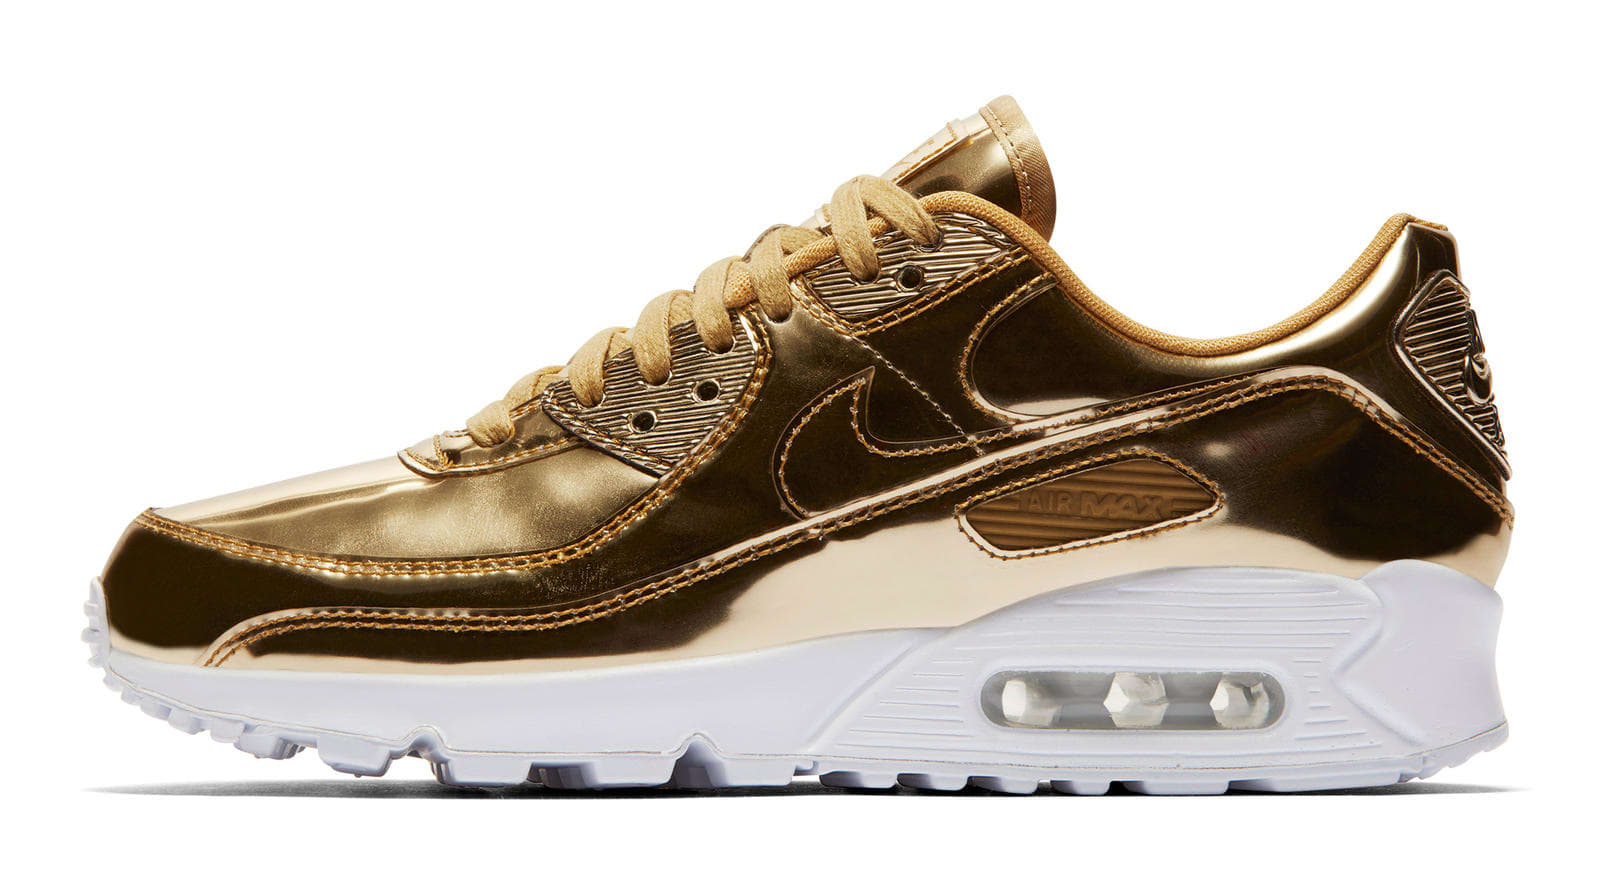 Nike Air Max 90 Gold 'Metallic Pack'